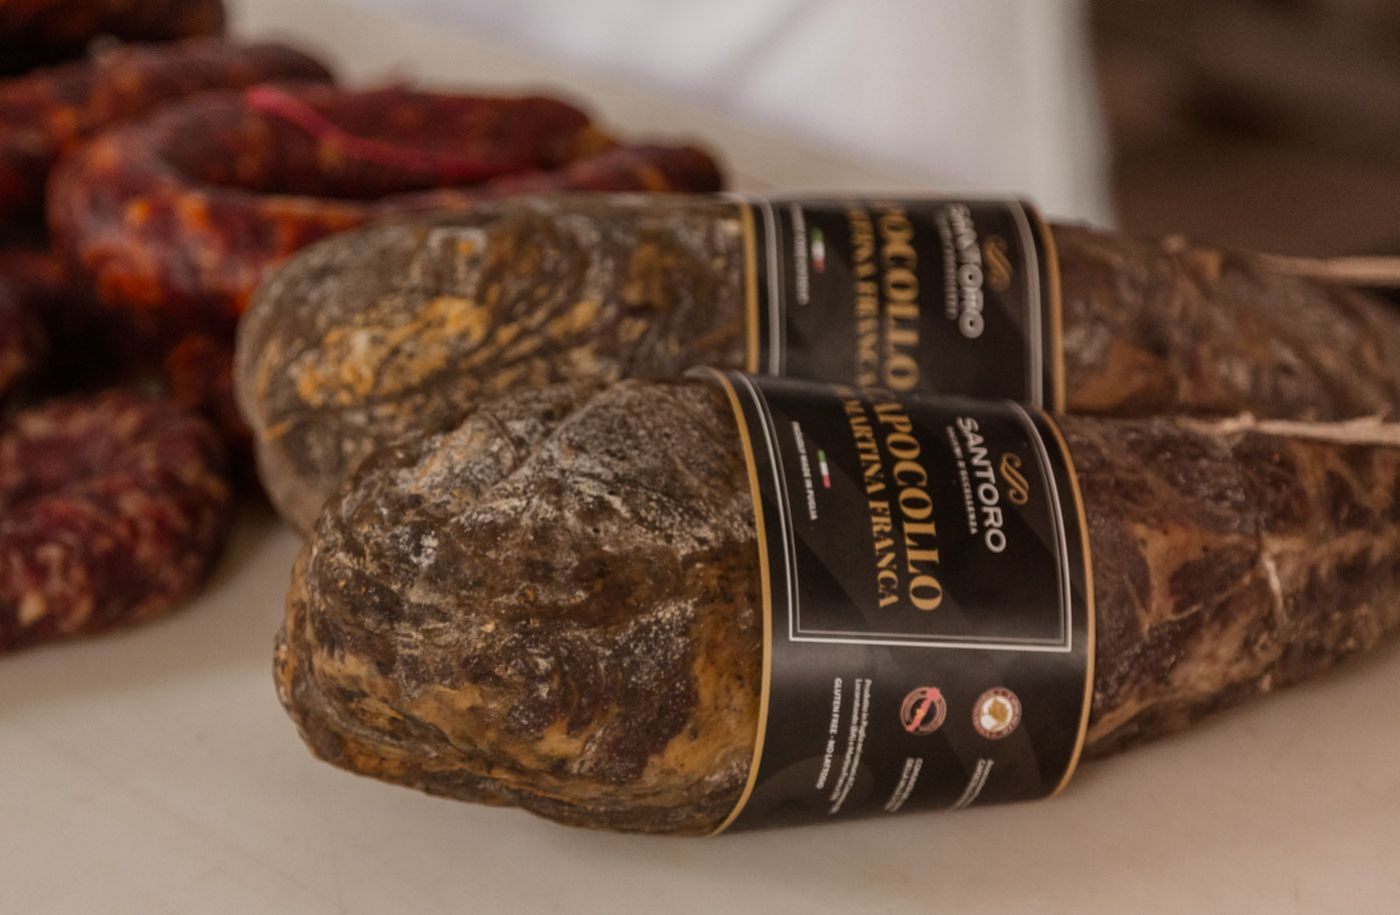 Capocolli and salami Santoro ready for sale